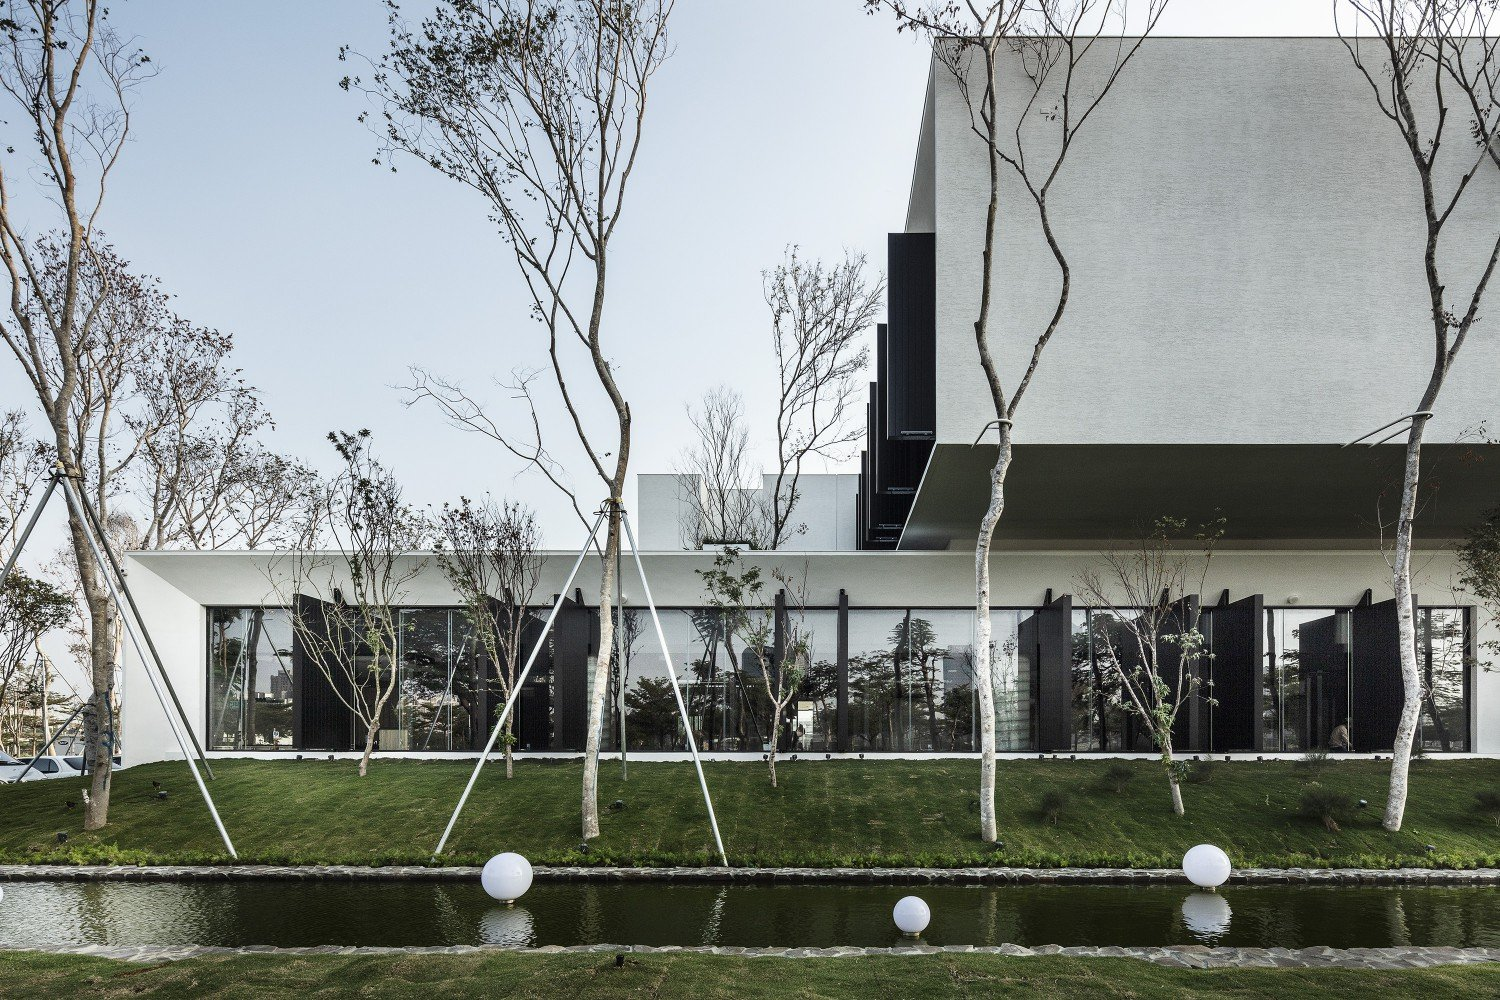 lots of greenery helps to filter out the light waves that so often disturb the eyes. Moooten Studio / Qimin Wu